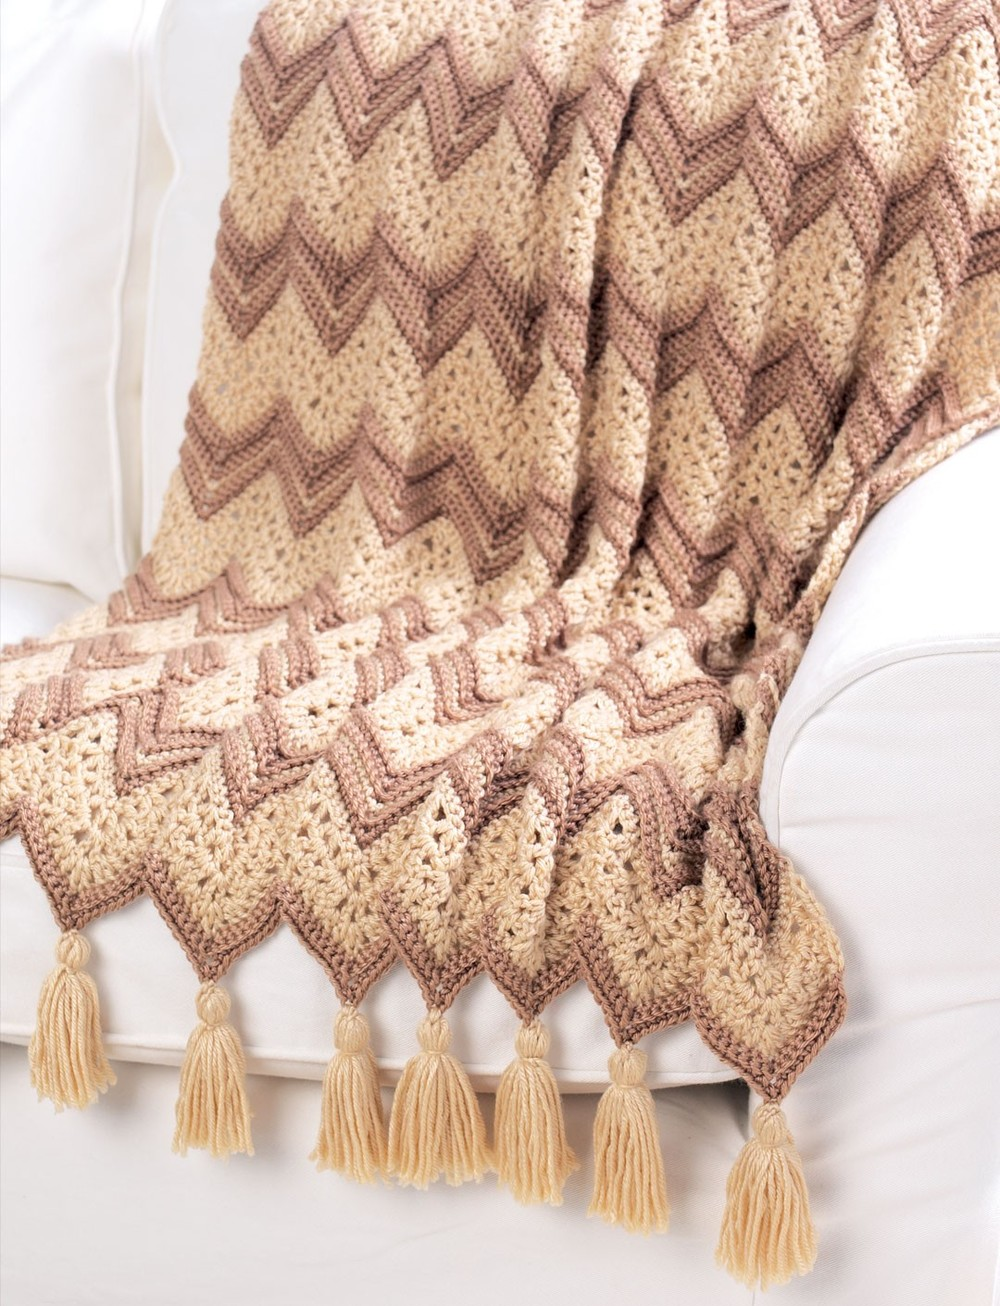 Free Pattern For Single Crochet Ripple Afghan : Neutral Ripple Afghan AllFreeCrochetAfghanPatterns.com